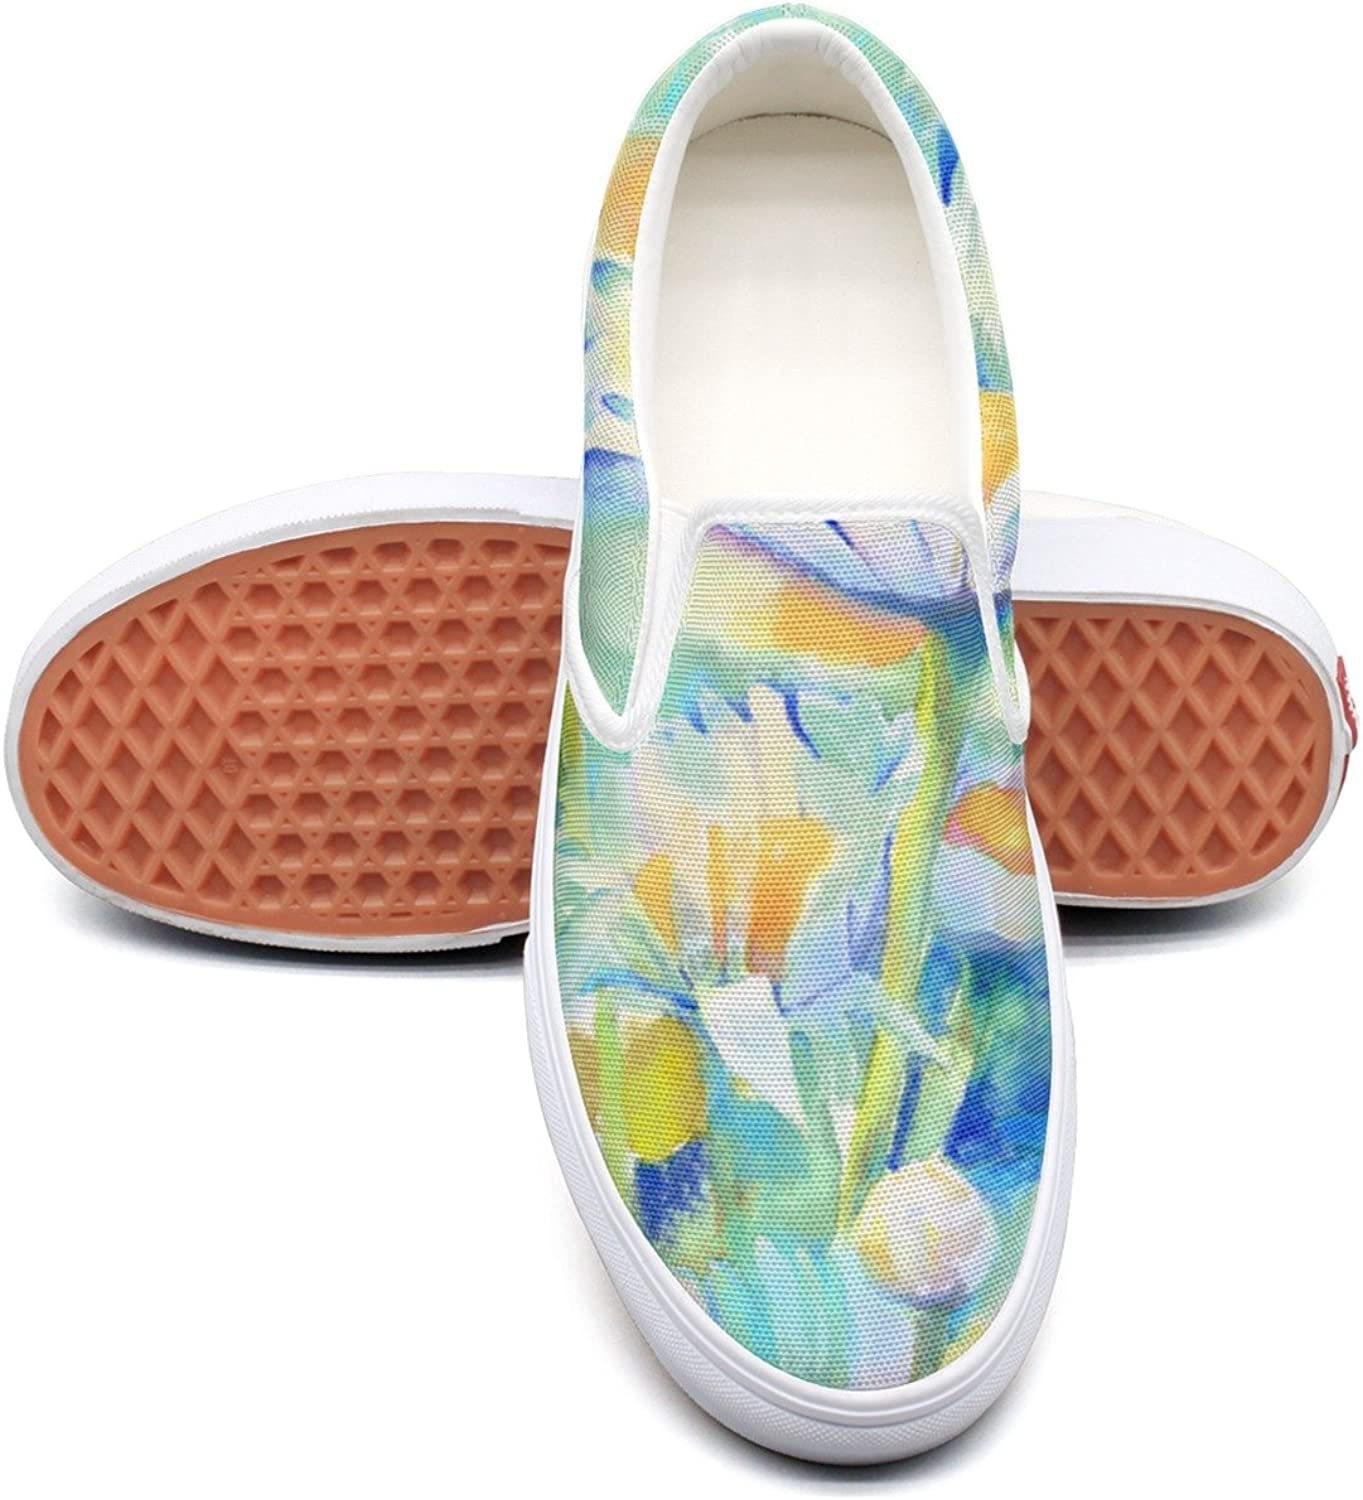 Hjkggd fgfds Casual Watercolor Happy Daisies Floral Women Girls Canvas Sneakers shoes